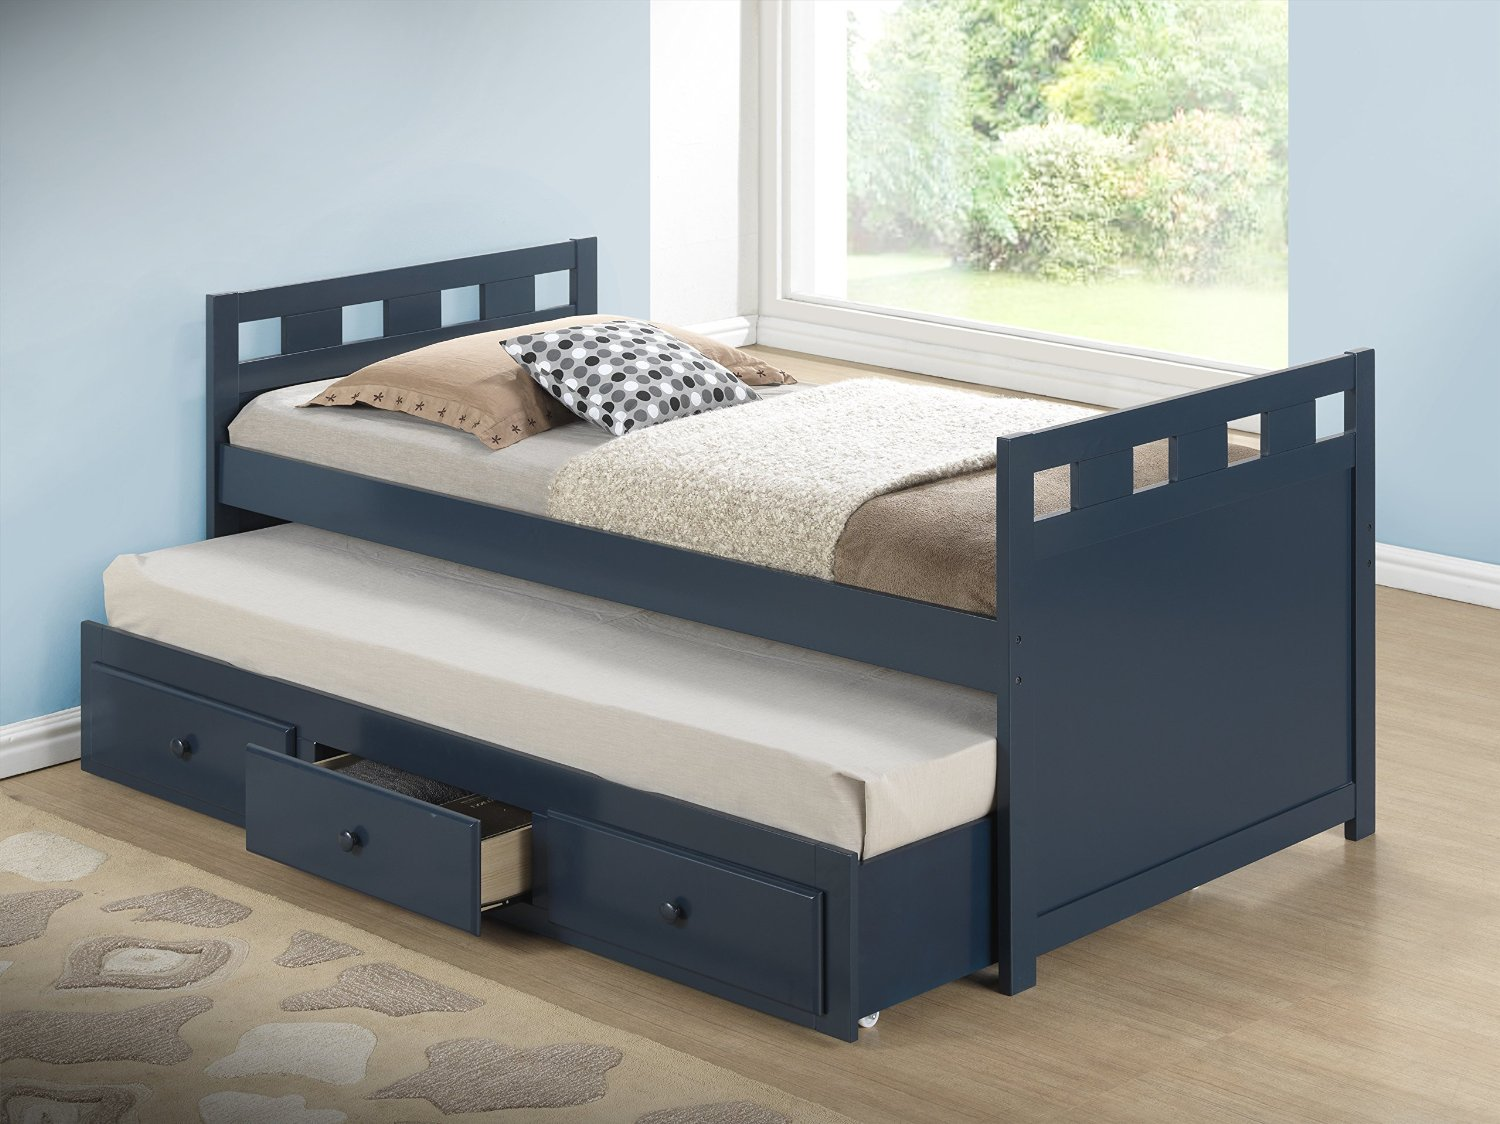 Twin bed with pull out slide out trundle bed underneath for Compact beds